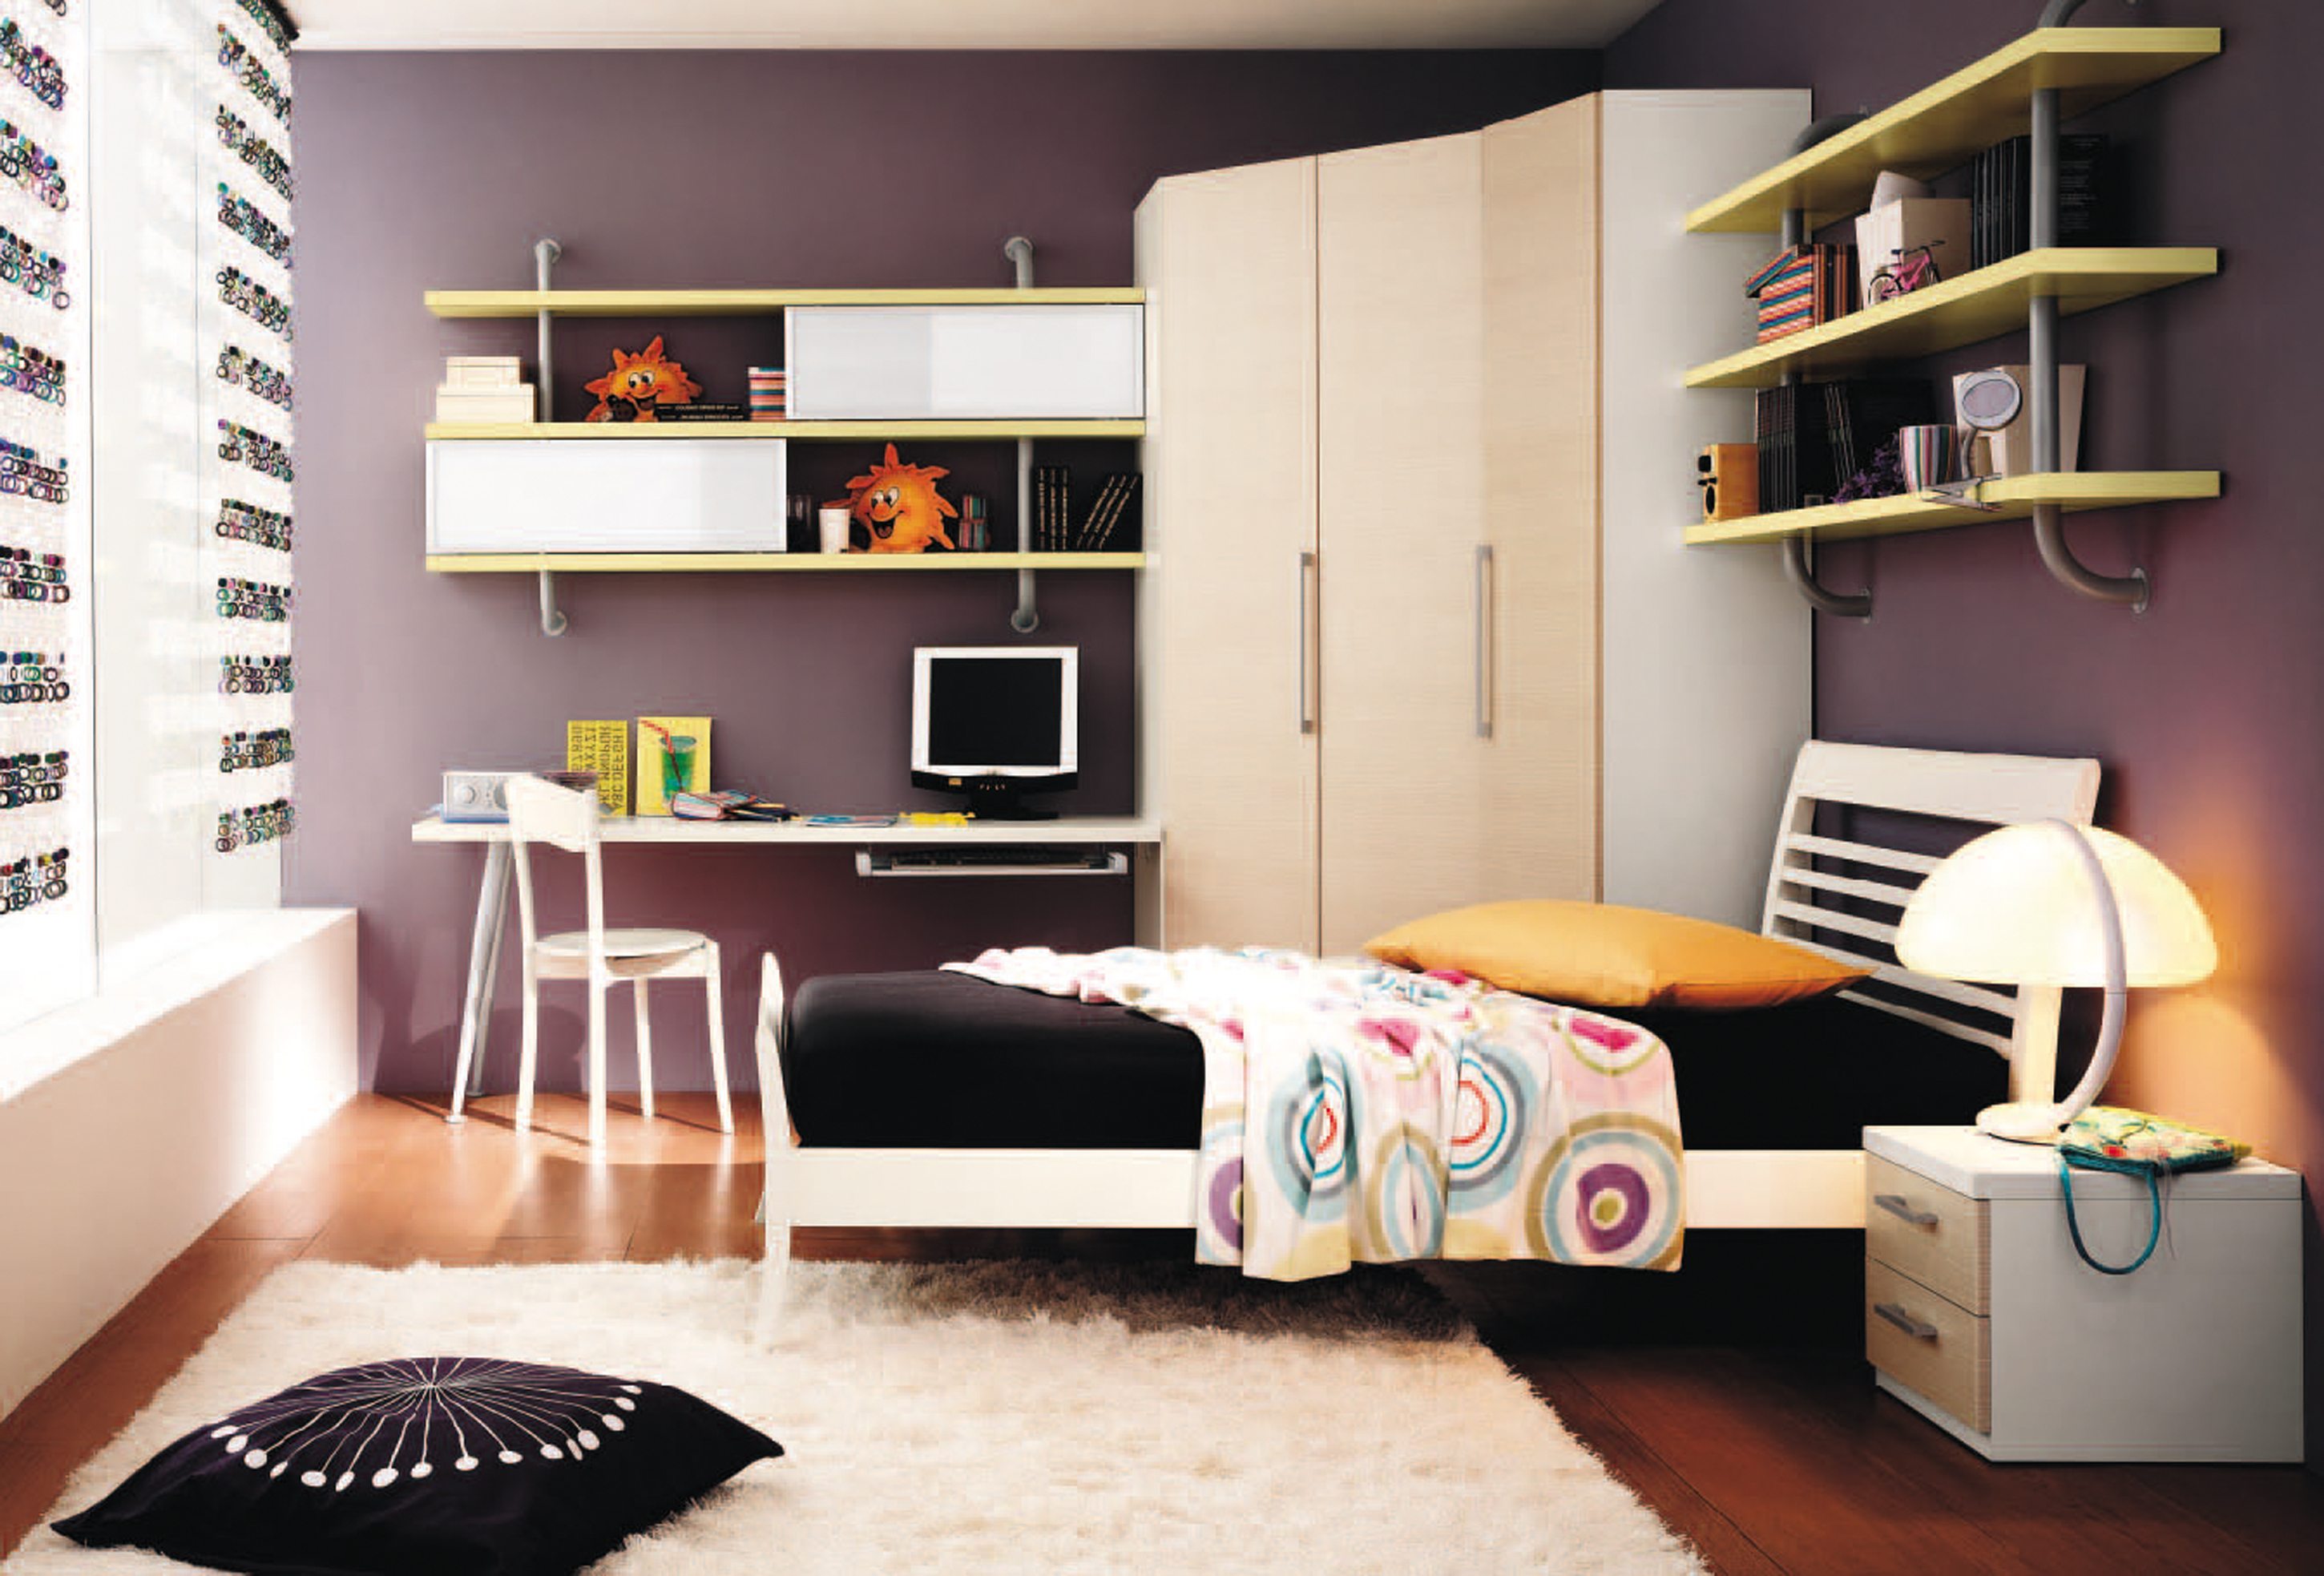 Kids Bedroom Cozy Boys Bedroom Decoration Idea With Black Bed Sheet With Orange Pillow White Nightstnad With White Desk Lamp And White Wardrobe Impressive Boys Bedroom Decoration Idea (View 25 of 28)